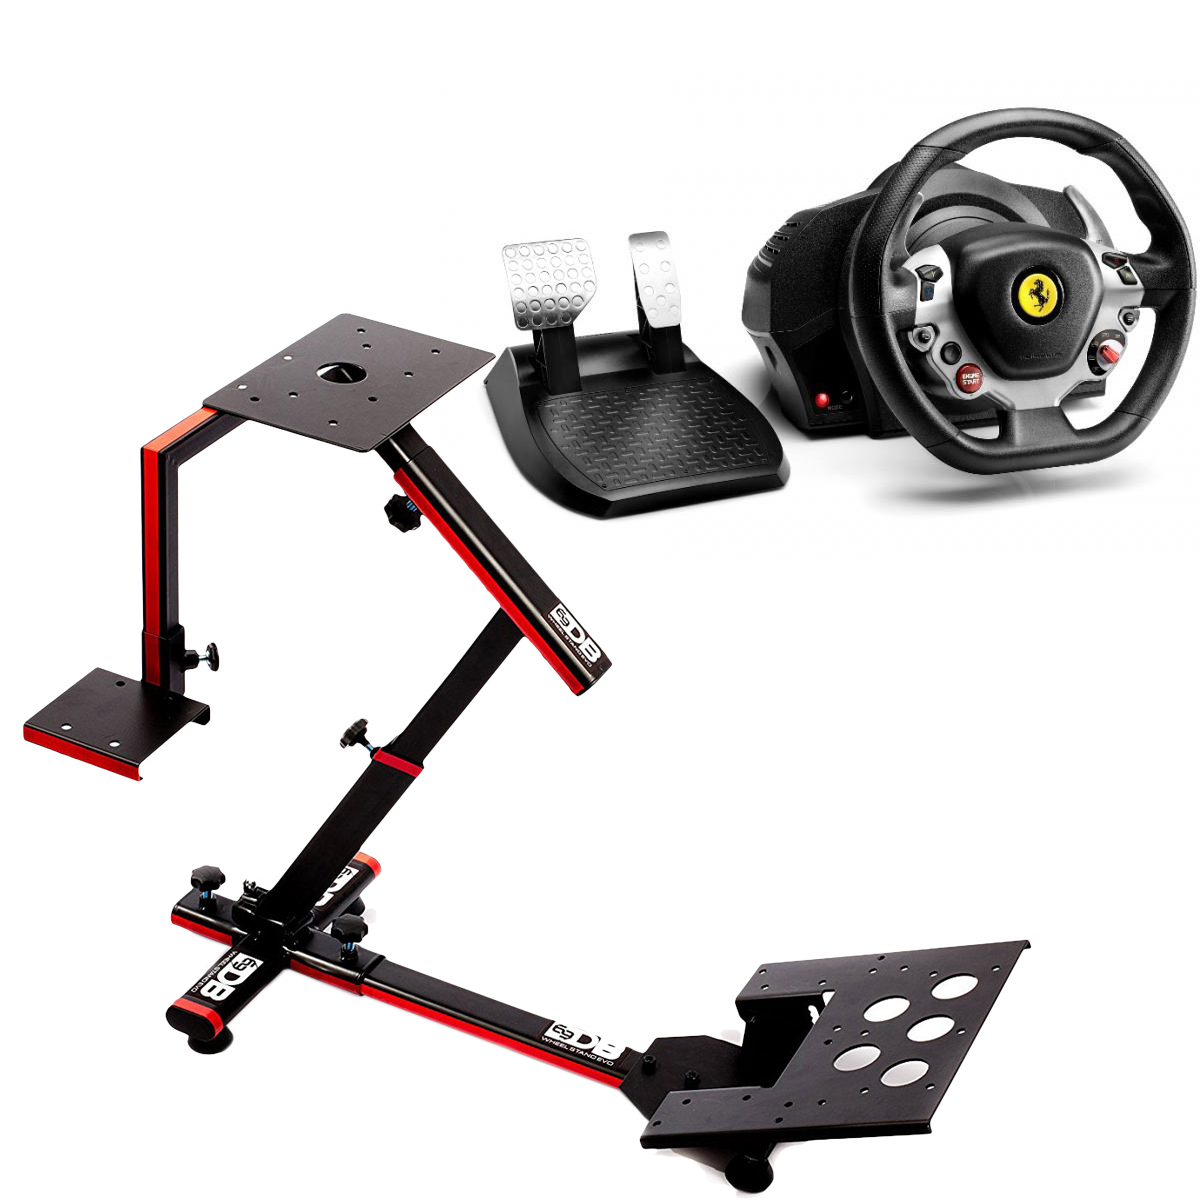 thrustmaster tx racing wheel ferrari 458 italia edition 69db wheel stand evo offert volant. Black Bedroom Furniture Sets. Home Design Ideas